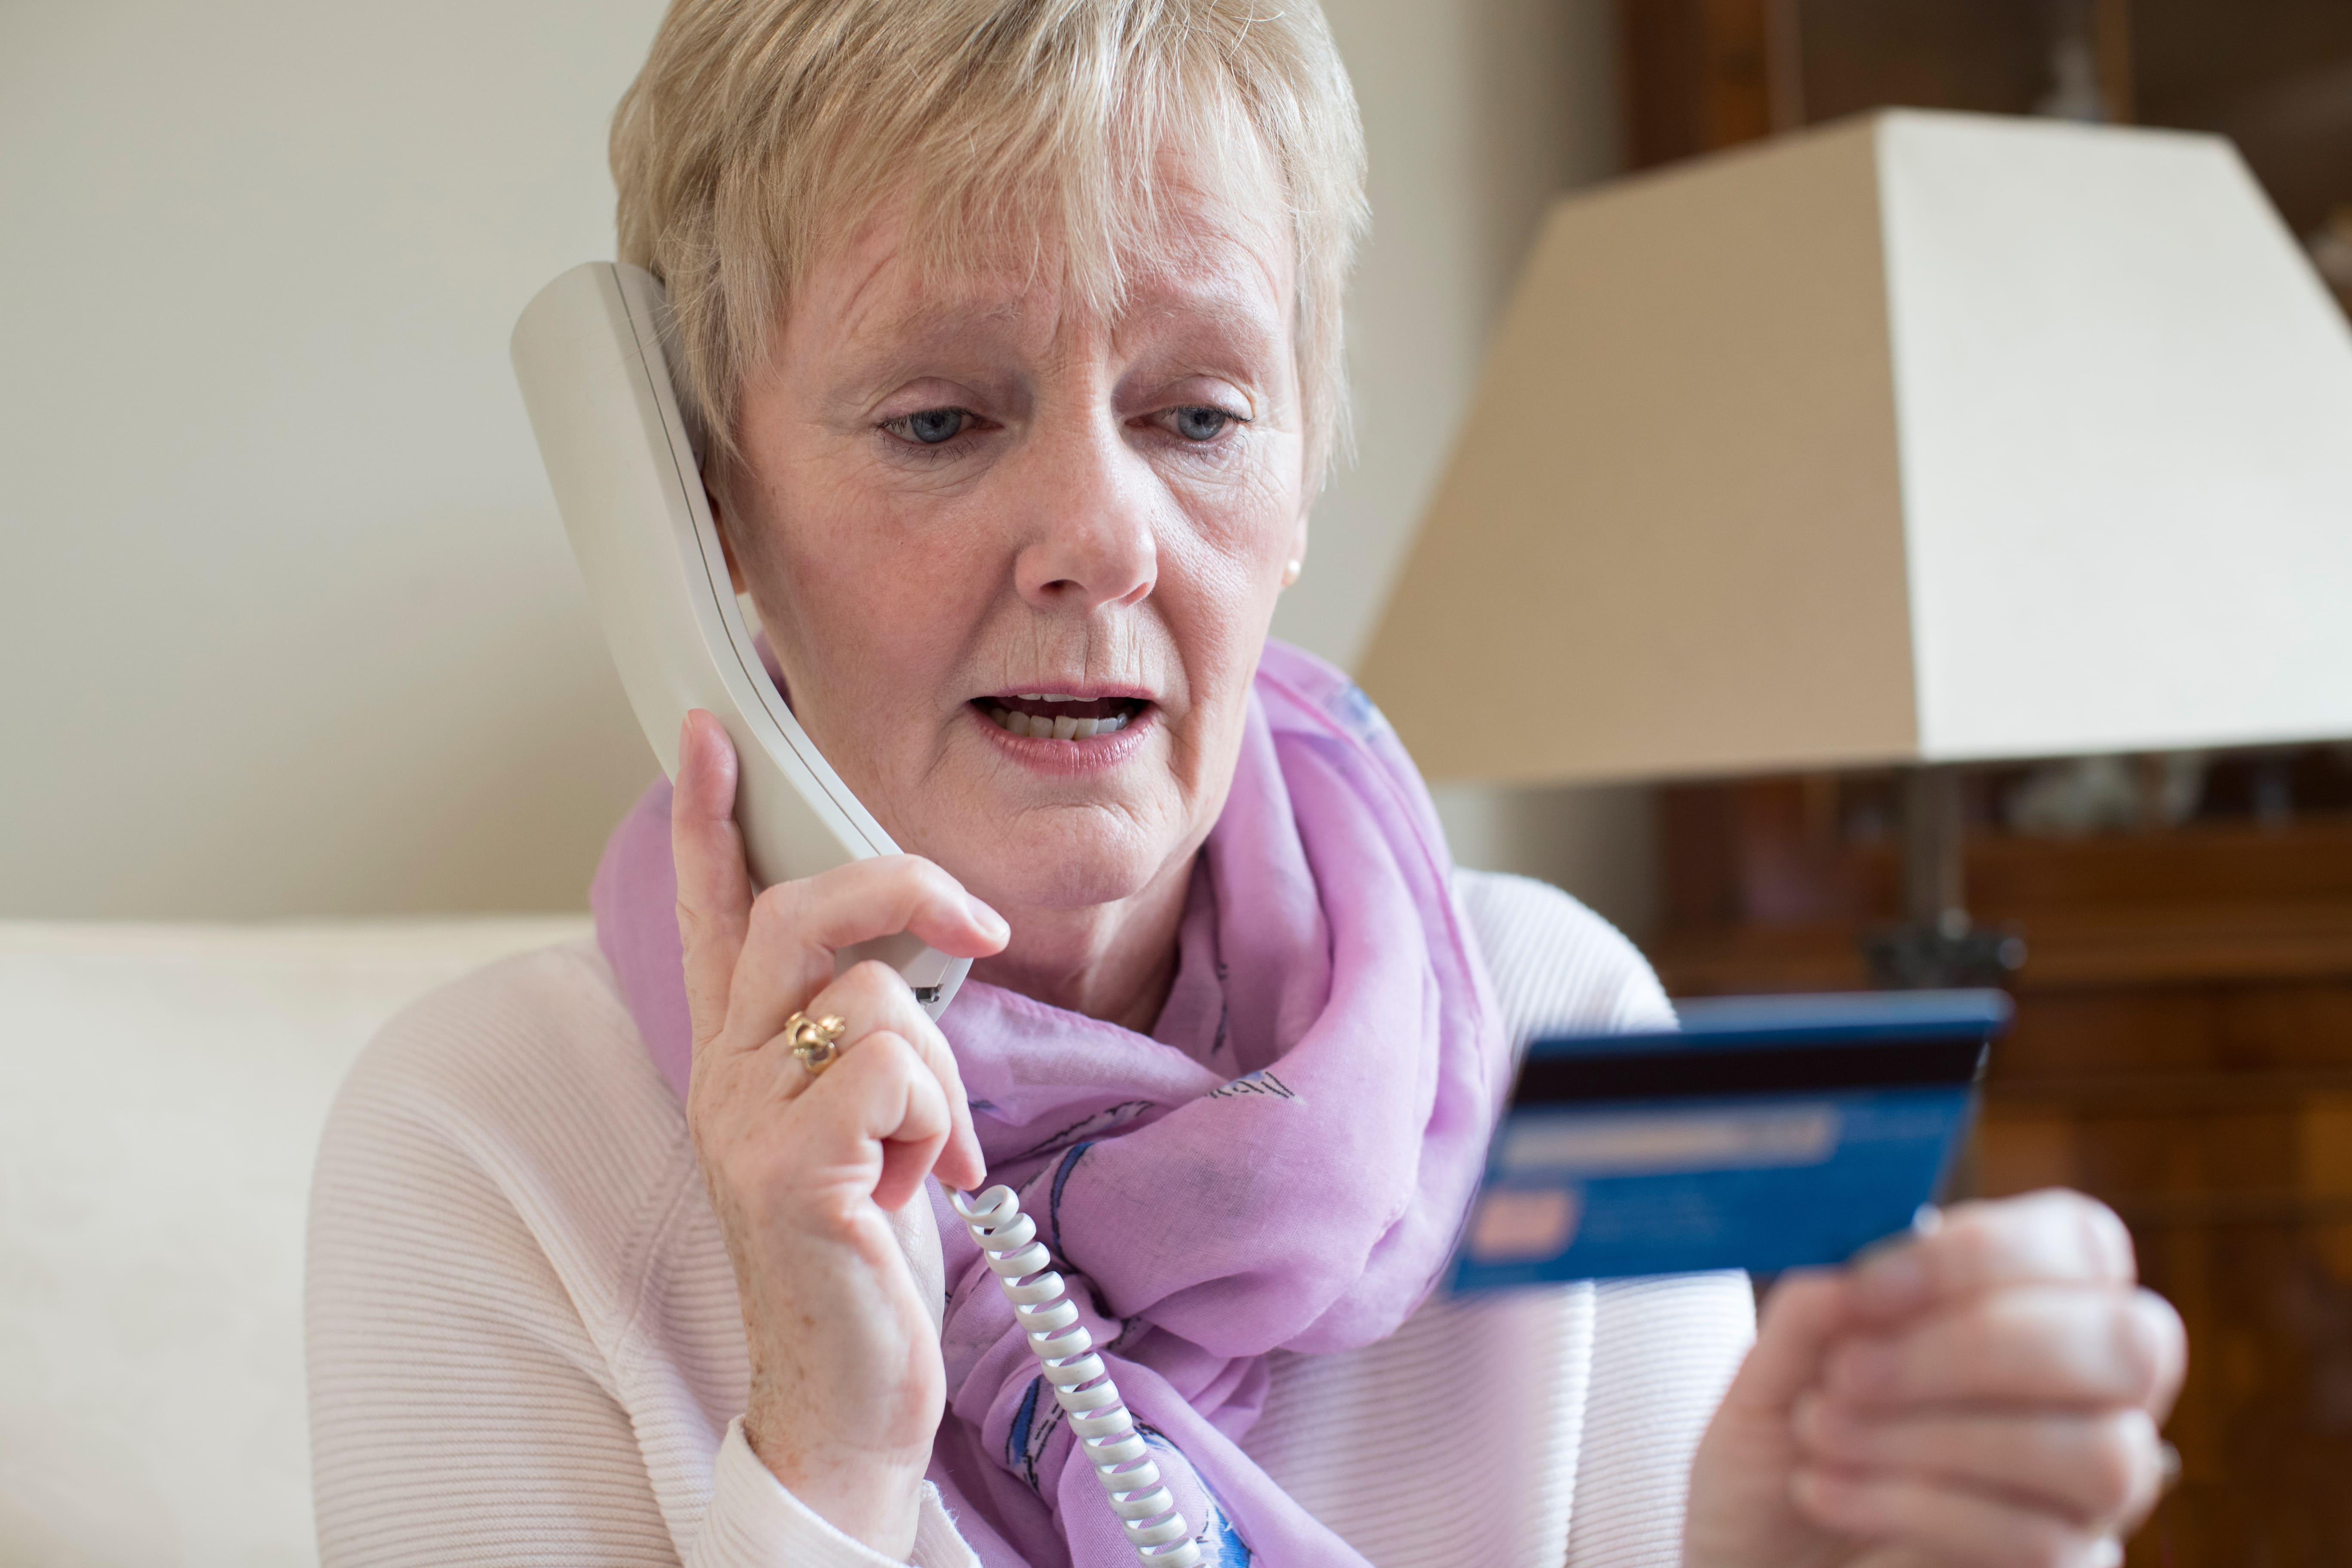 Protecting Loved Ones With Memory Issues From Scams